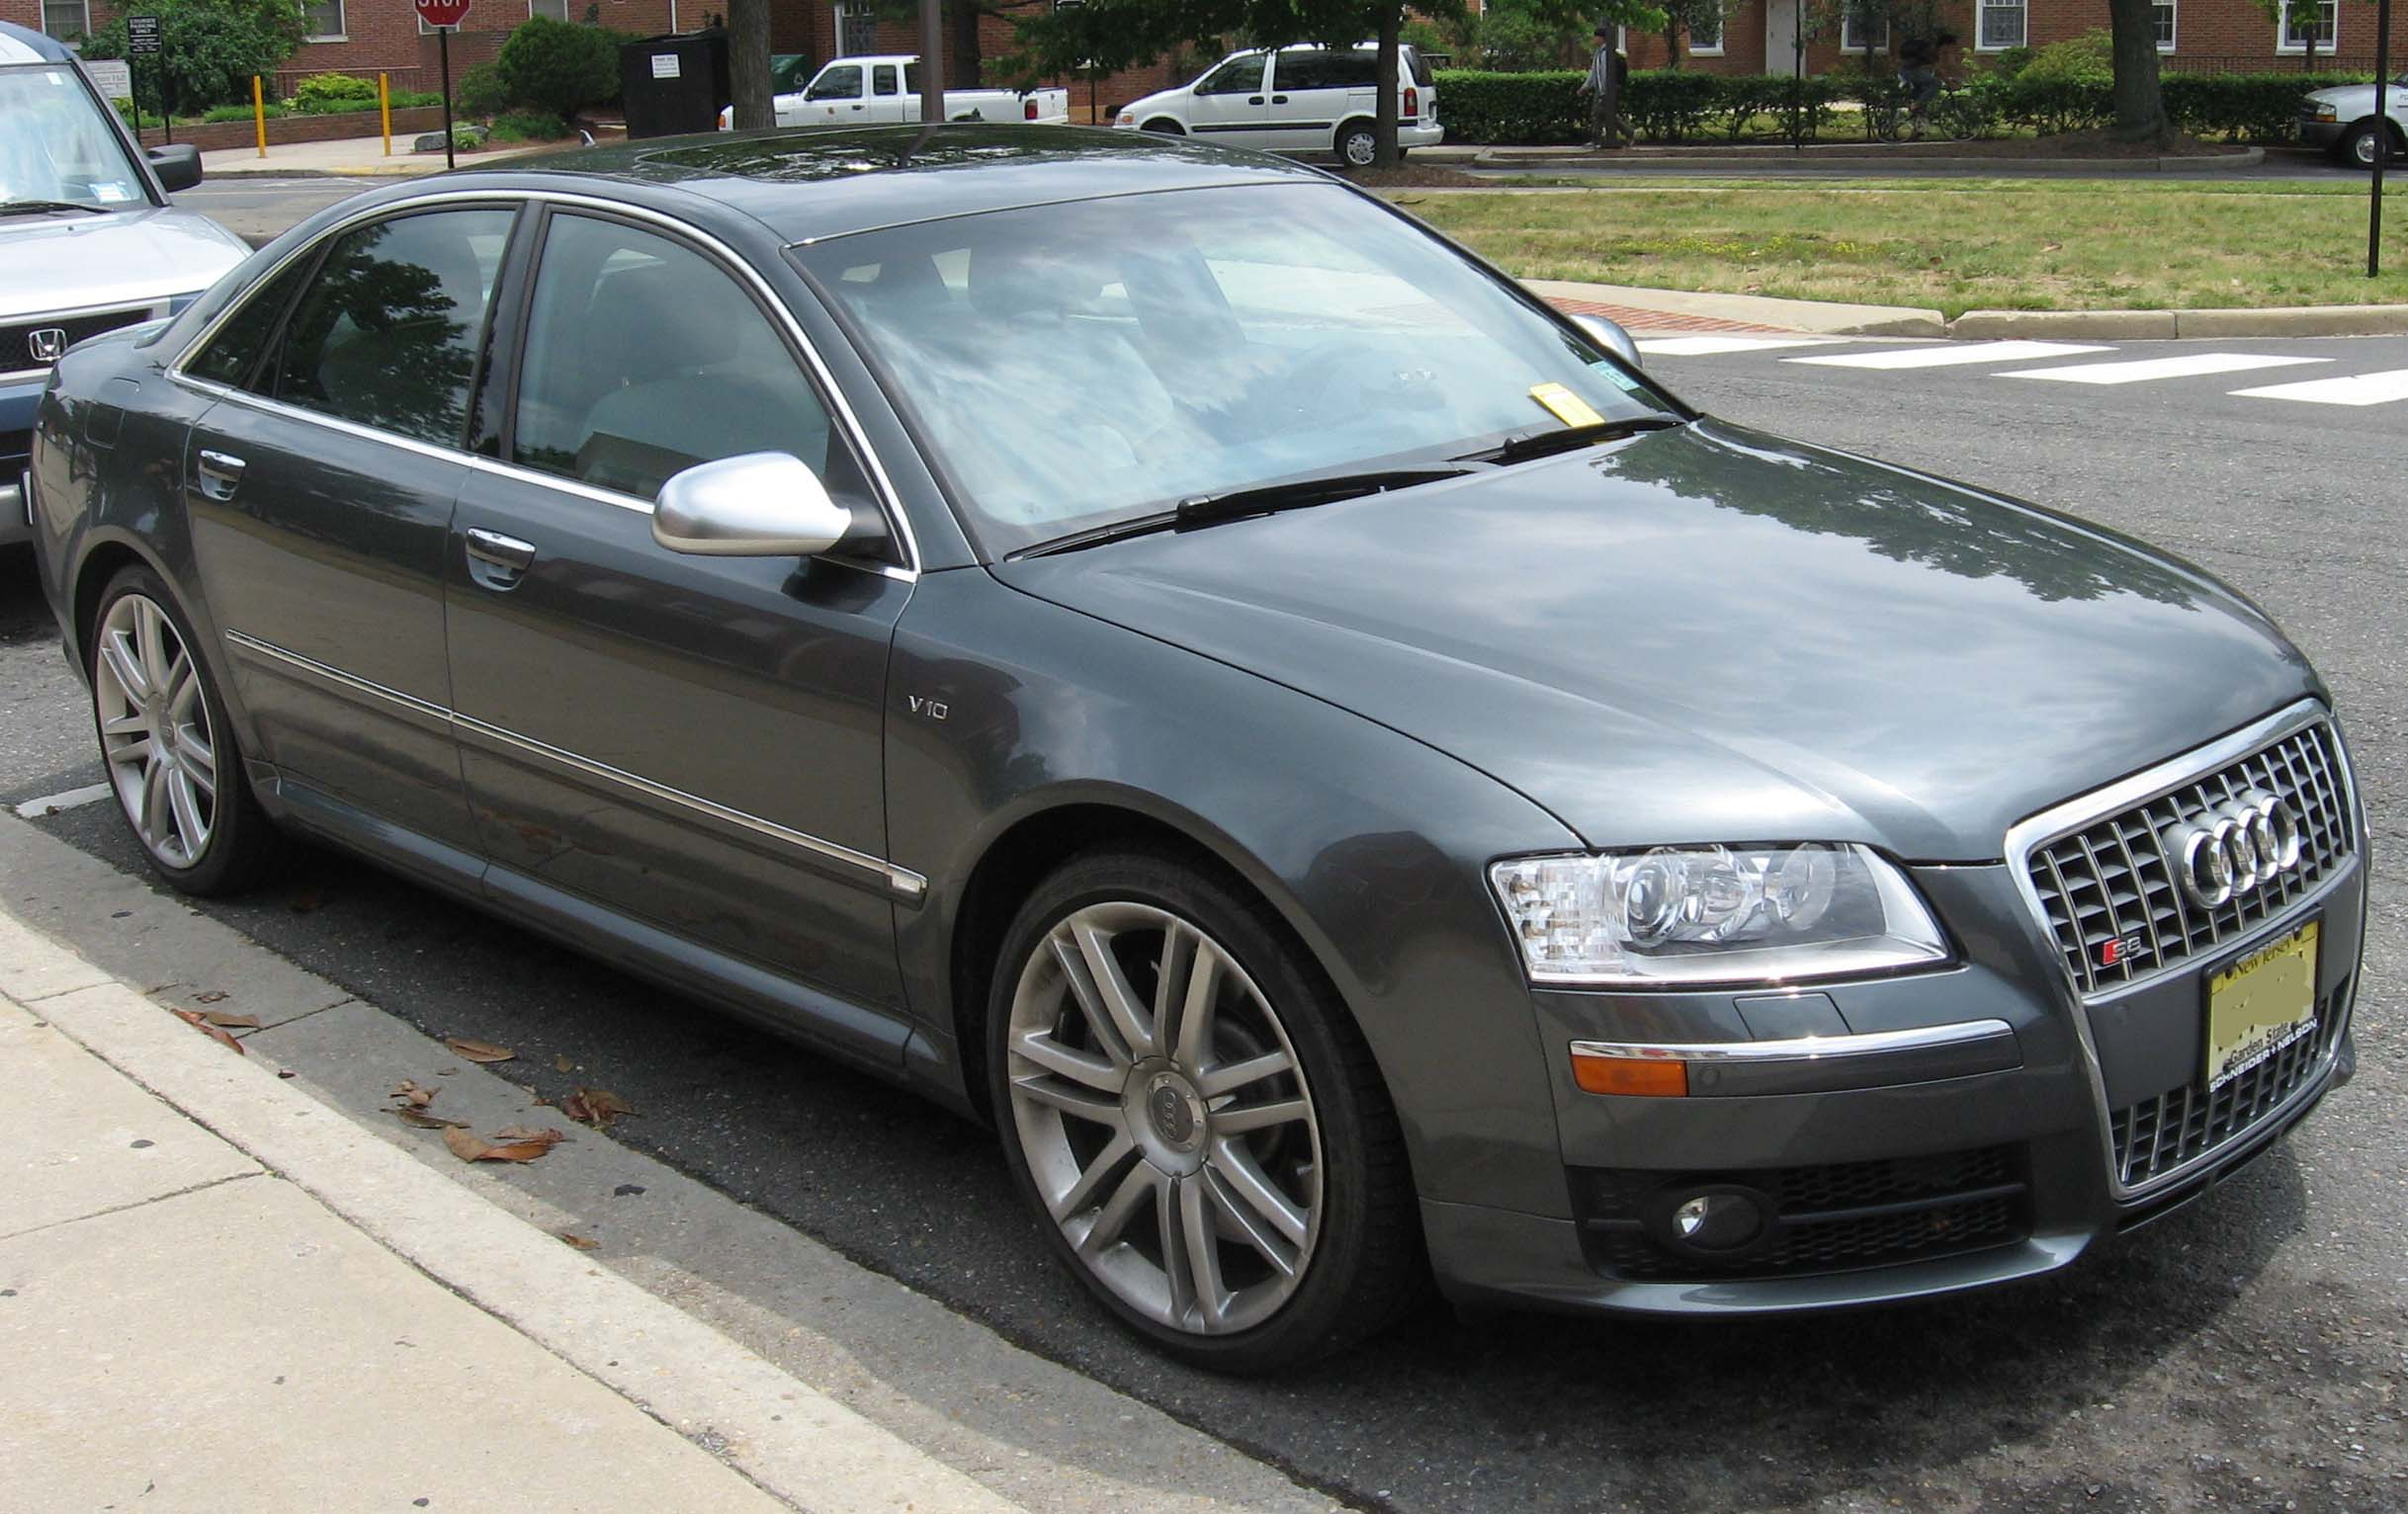 FileAudiSjpg Wikimedia Commons - 2007 audi s8